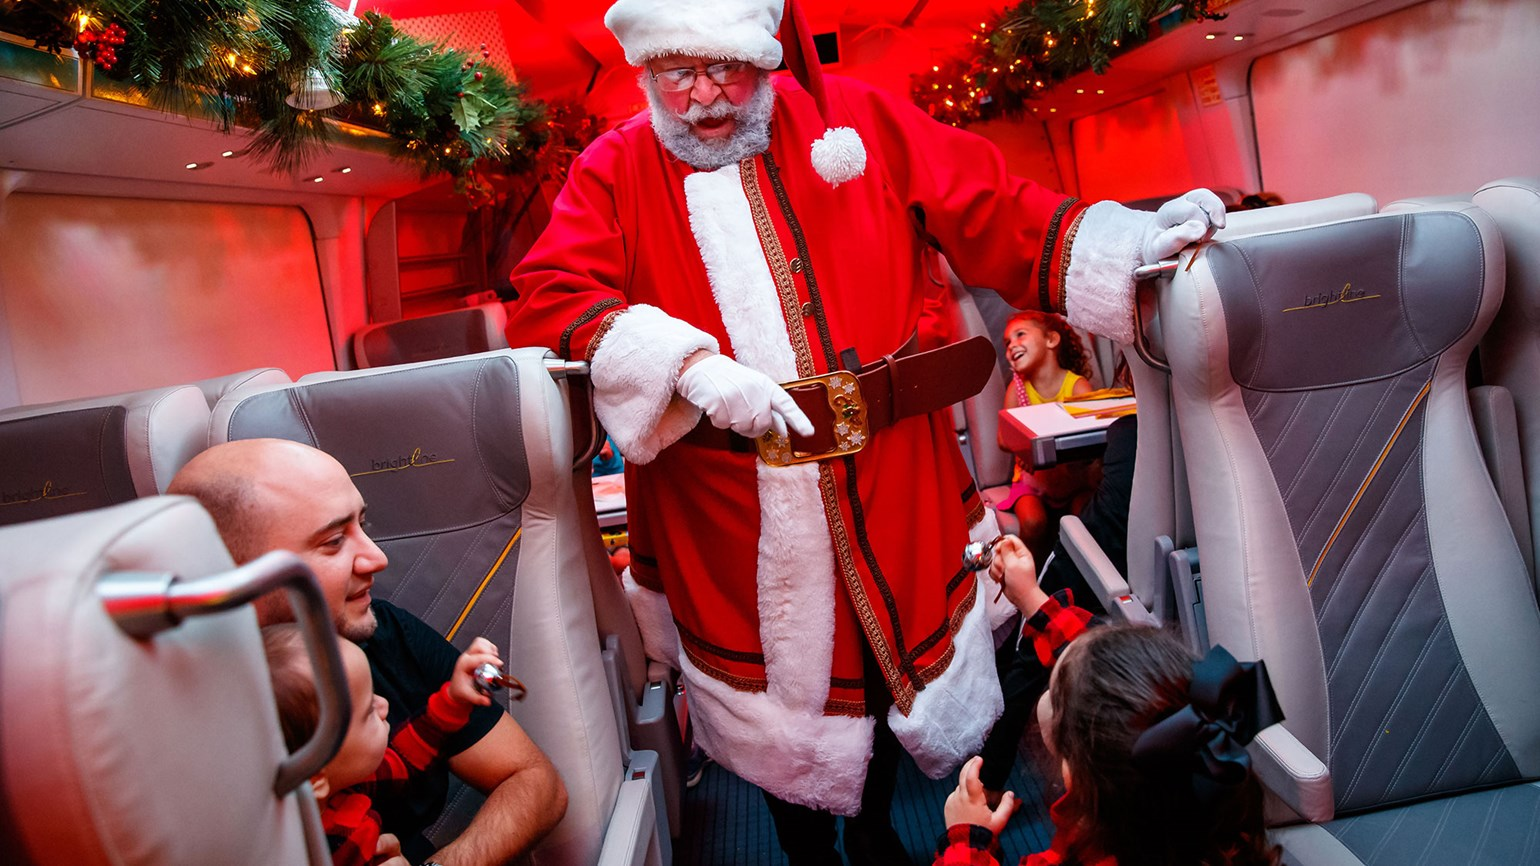 Virgin Trains USA says all aboard for 'Polar Express'